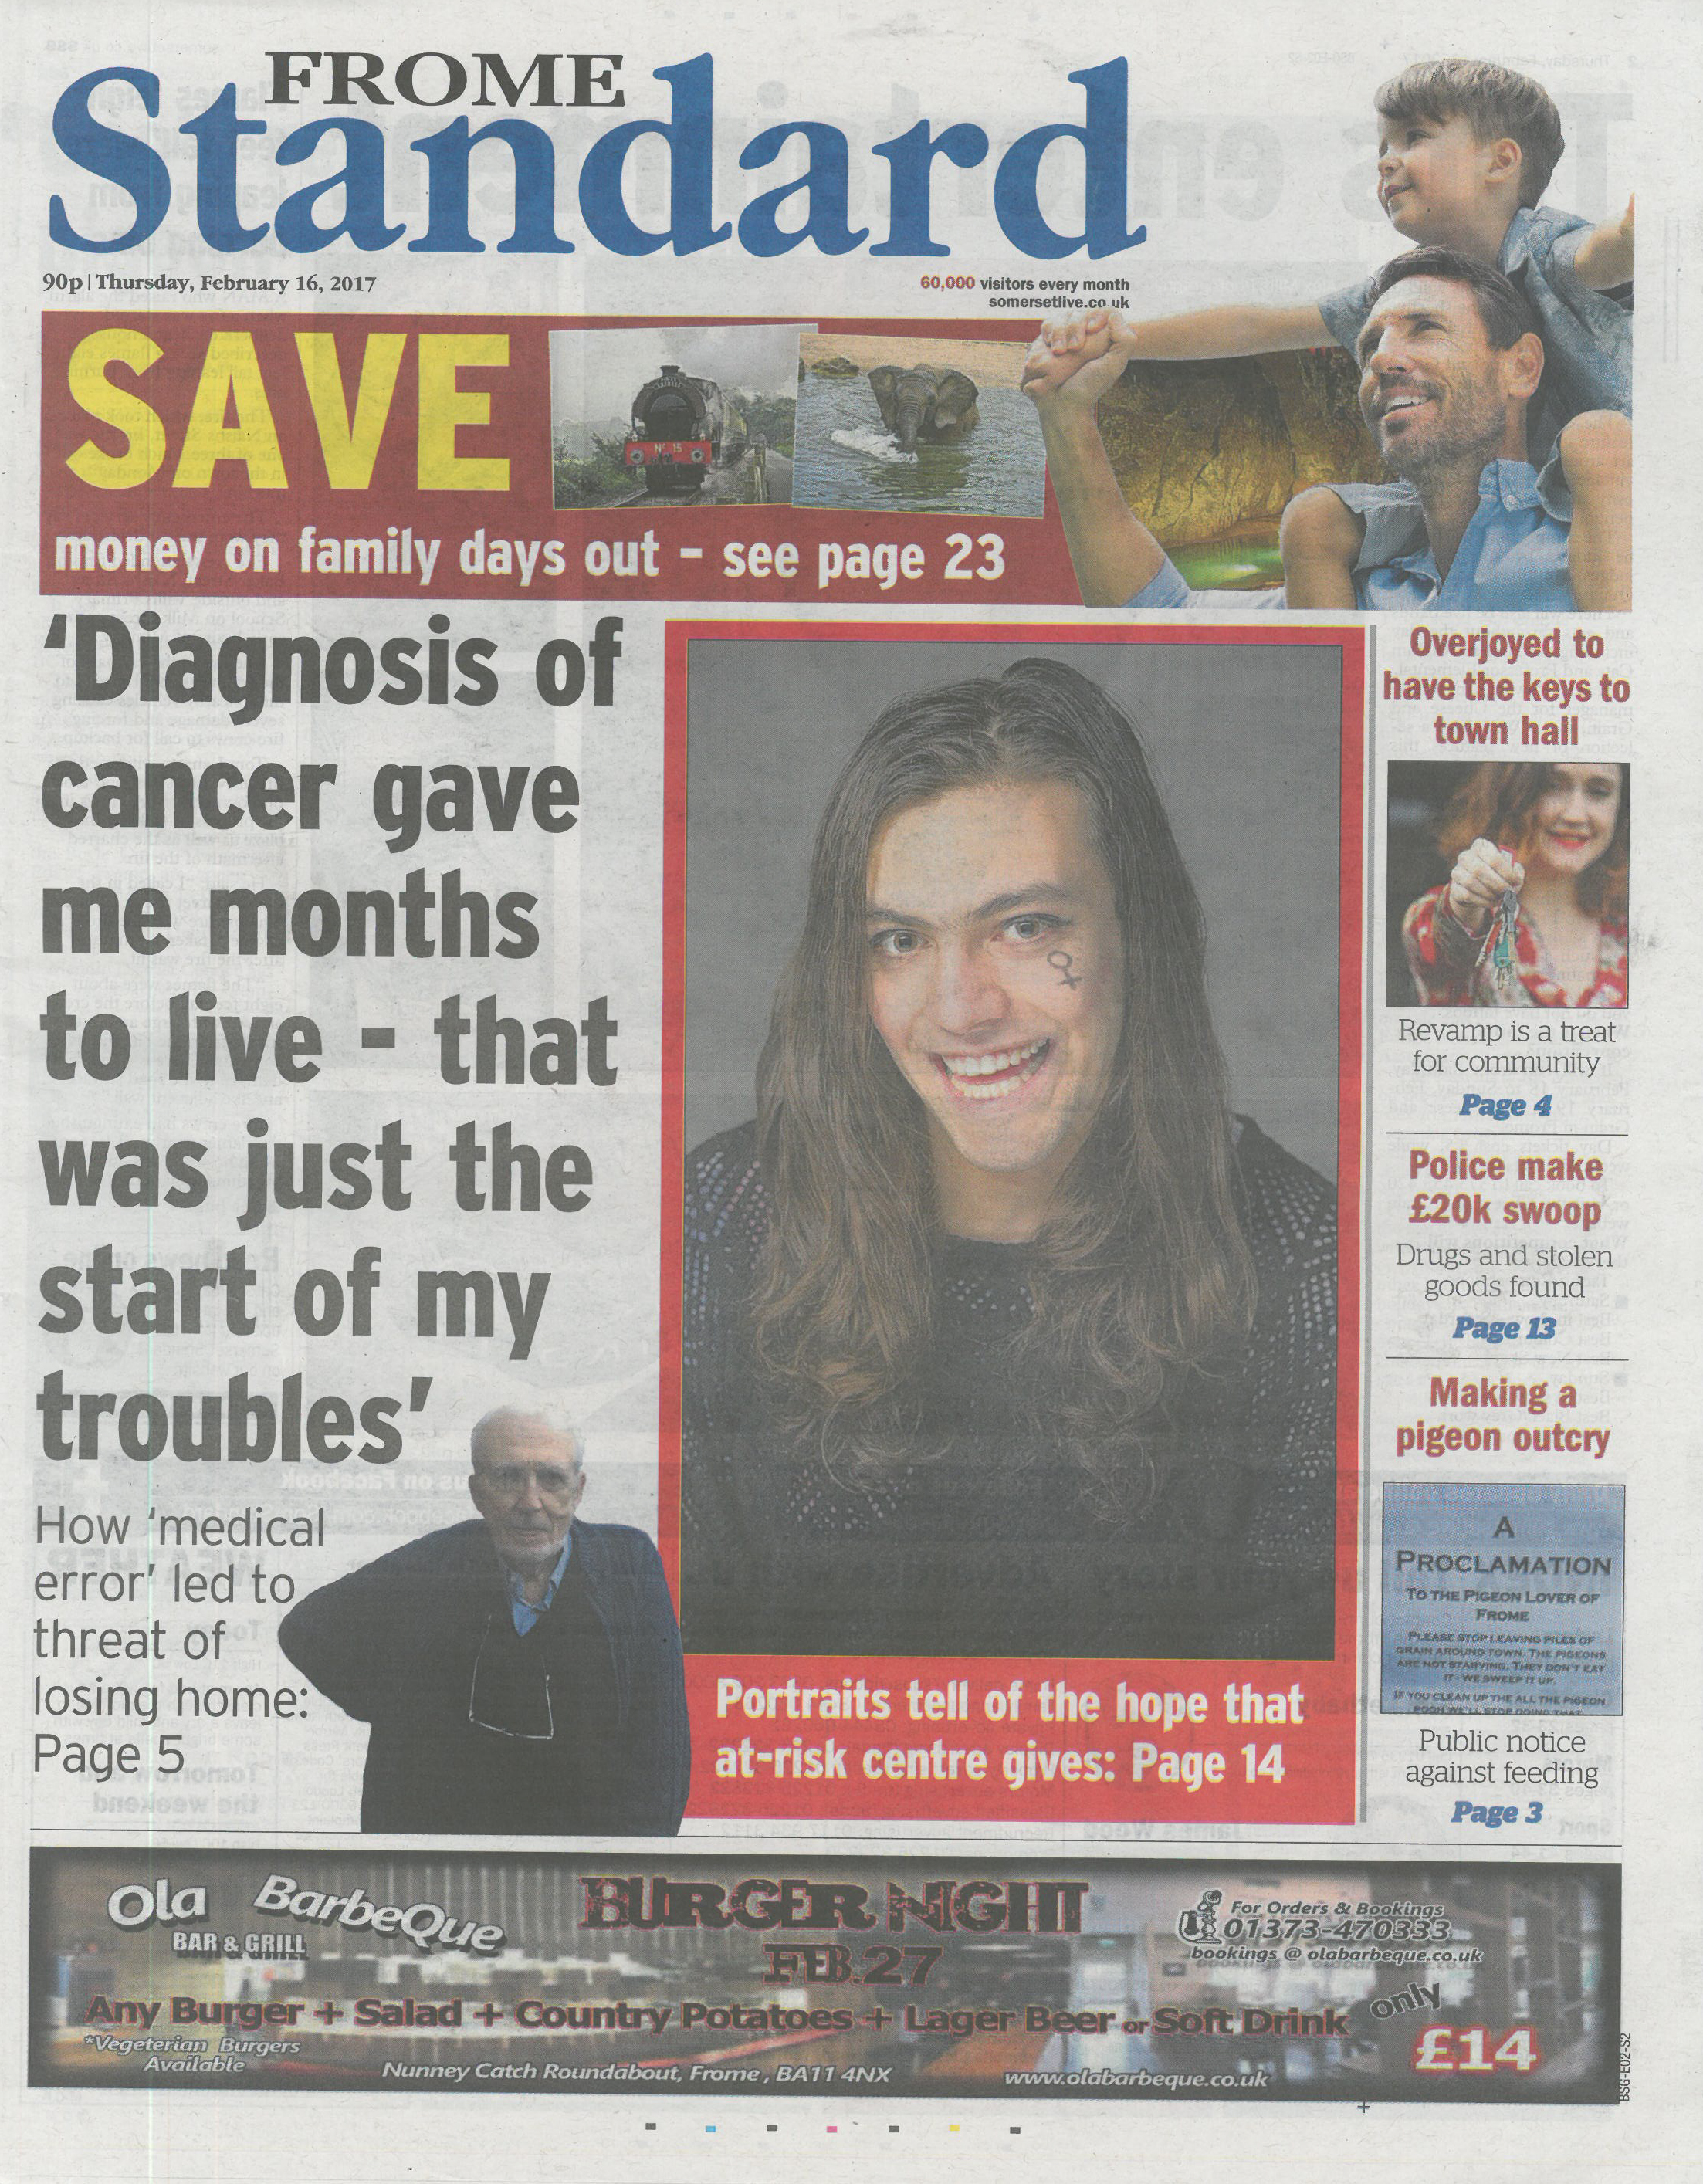 Frome Standard cover showing the portrait of Mona Vaas.